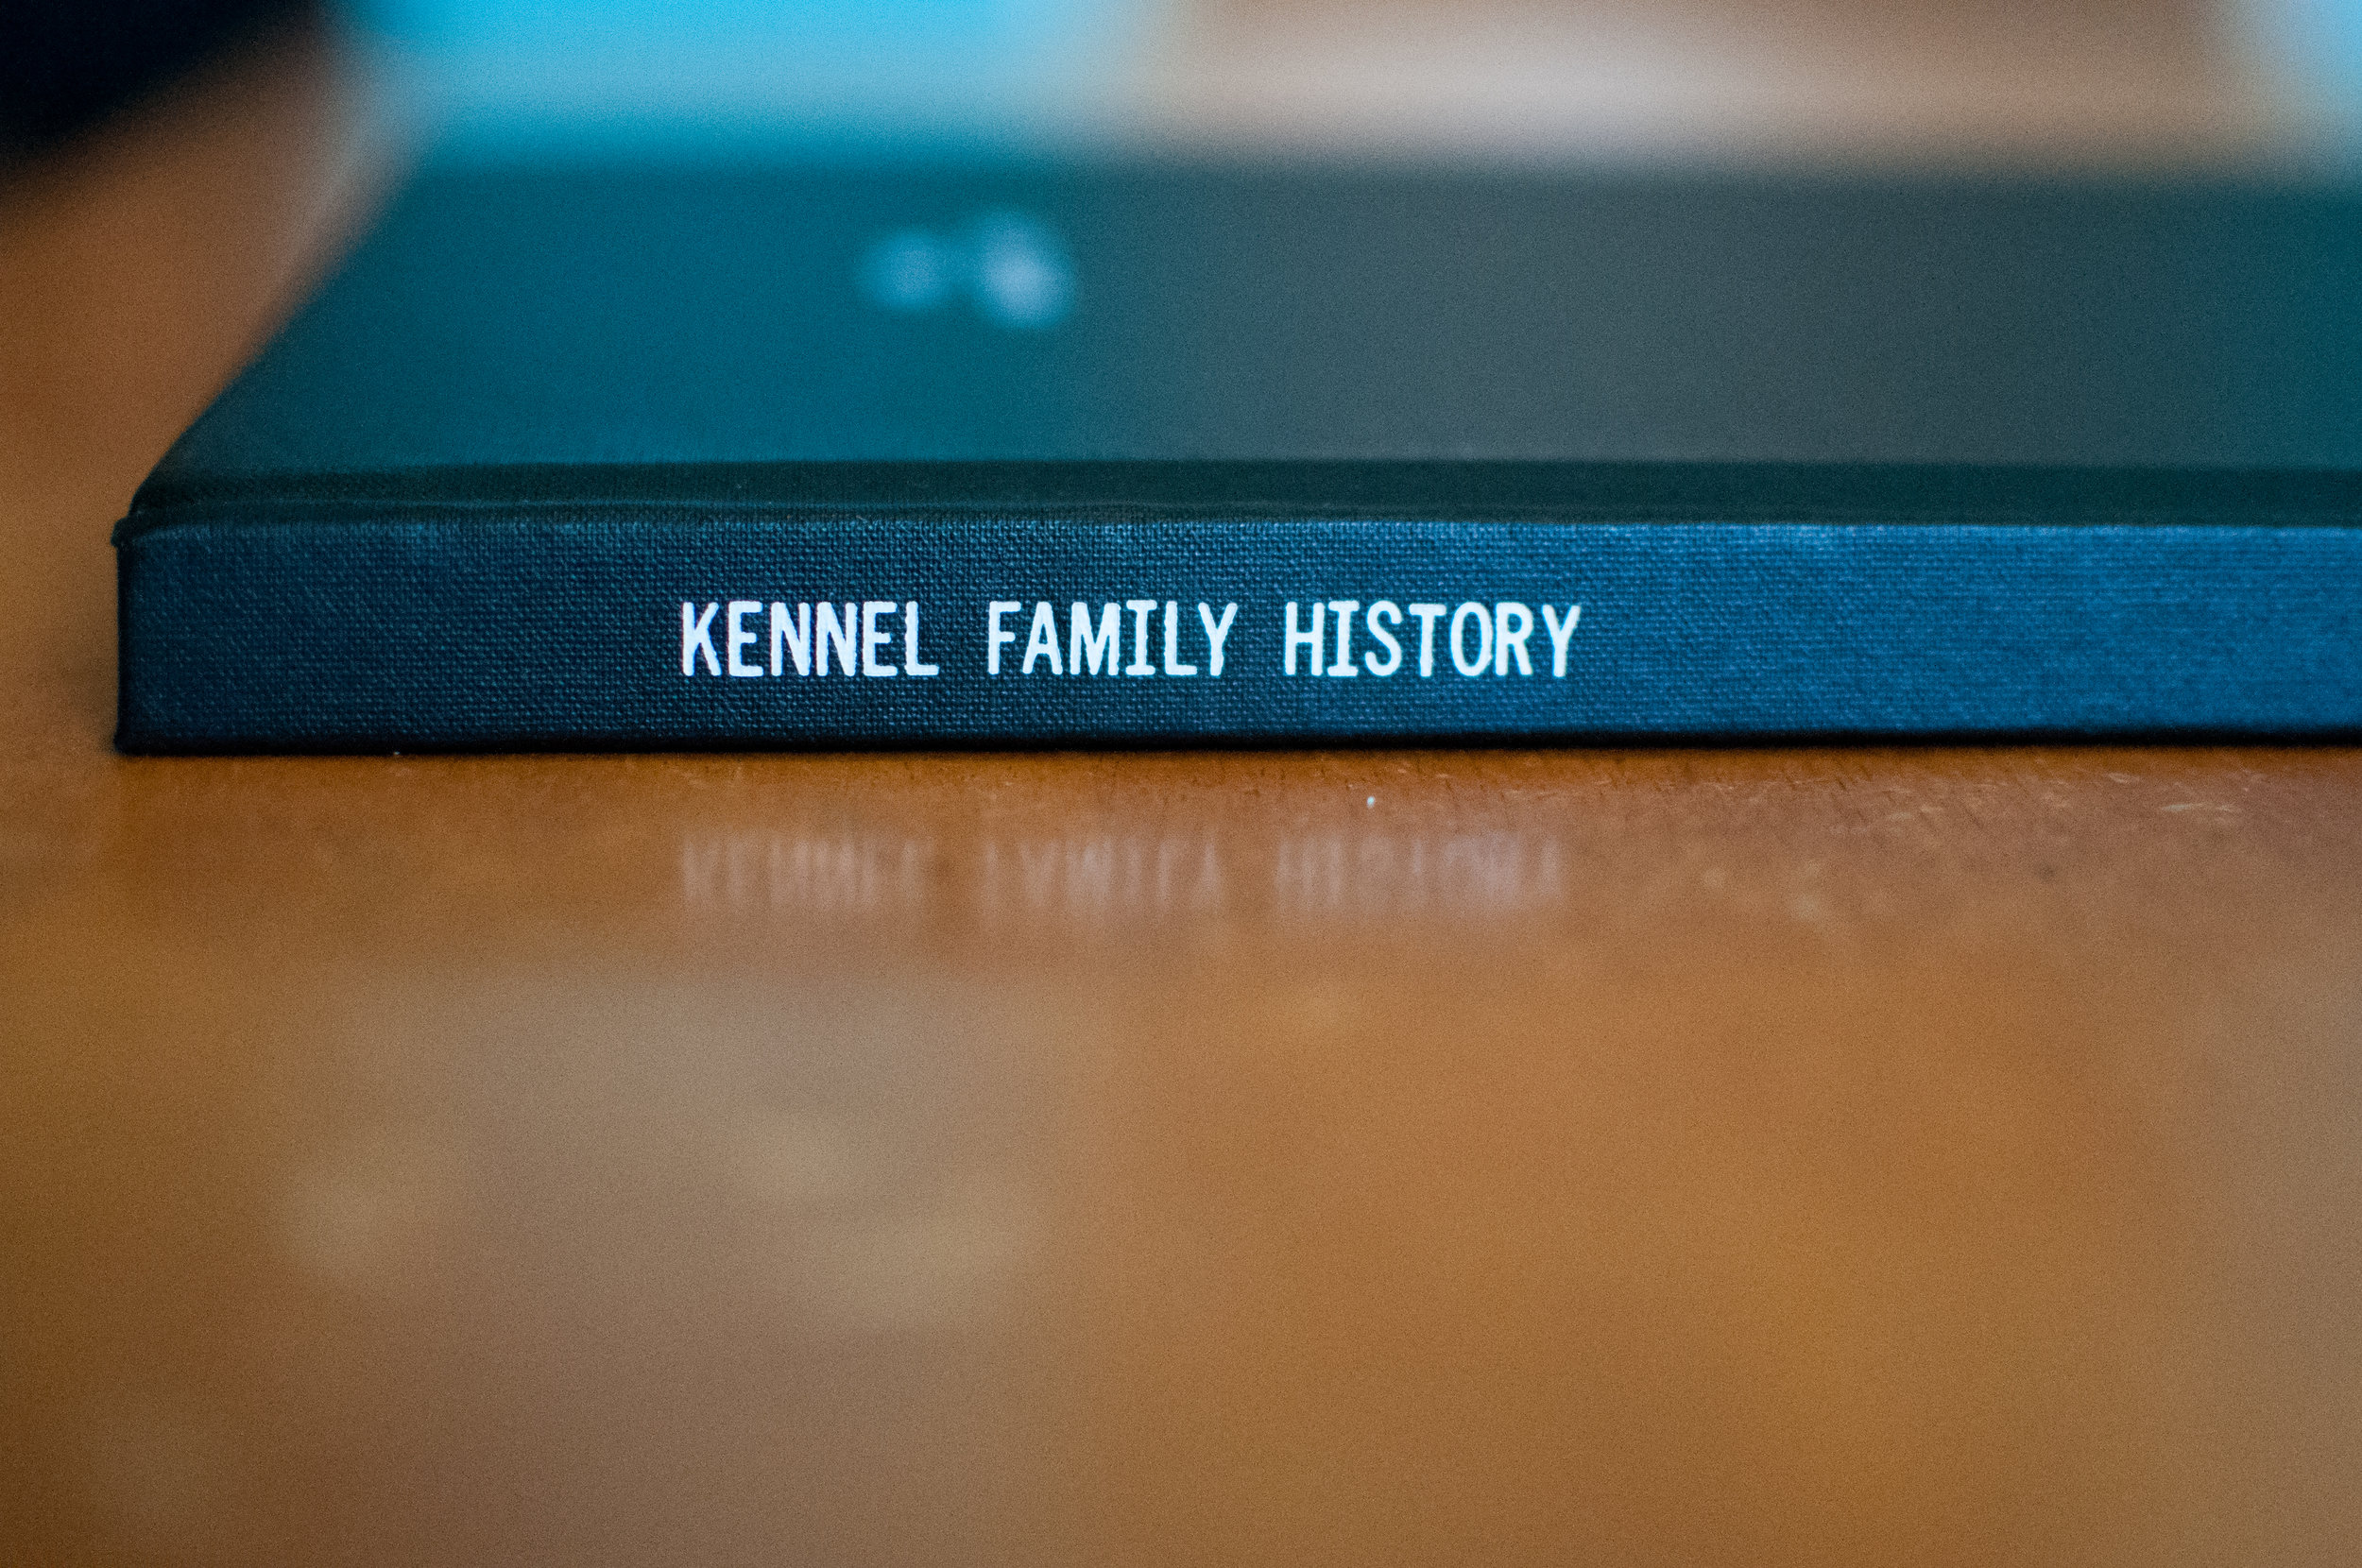 Kennell Family History Exterior-3.jpg